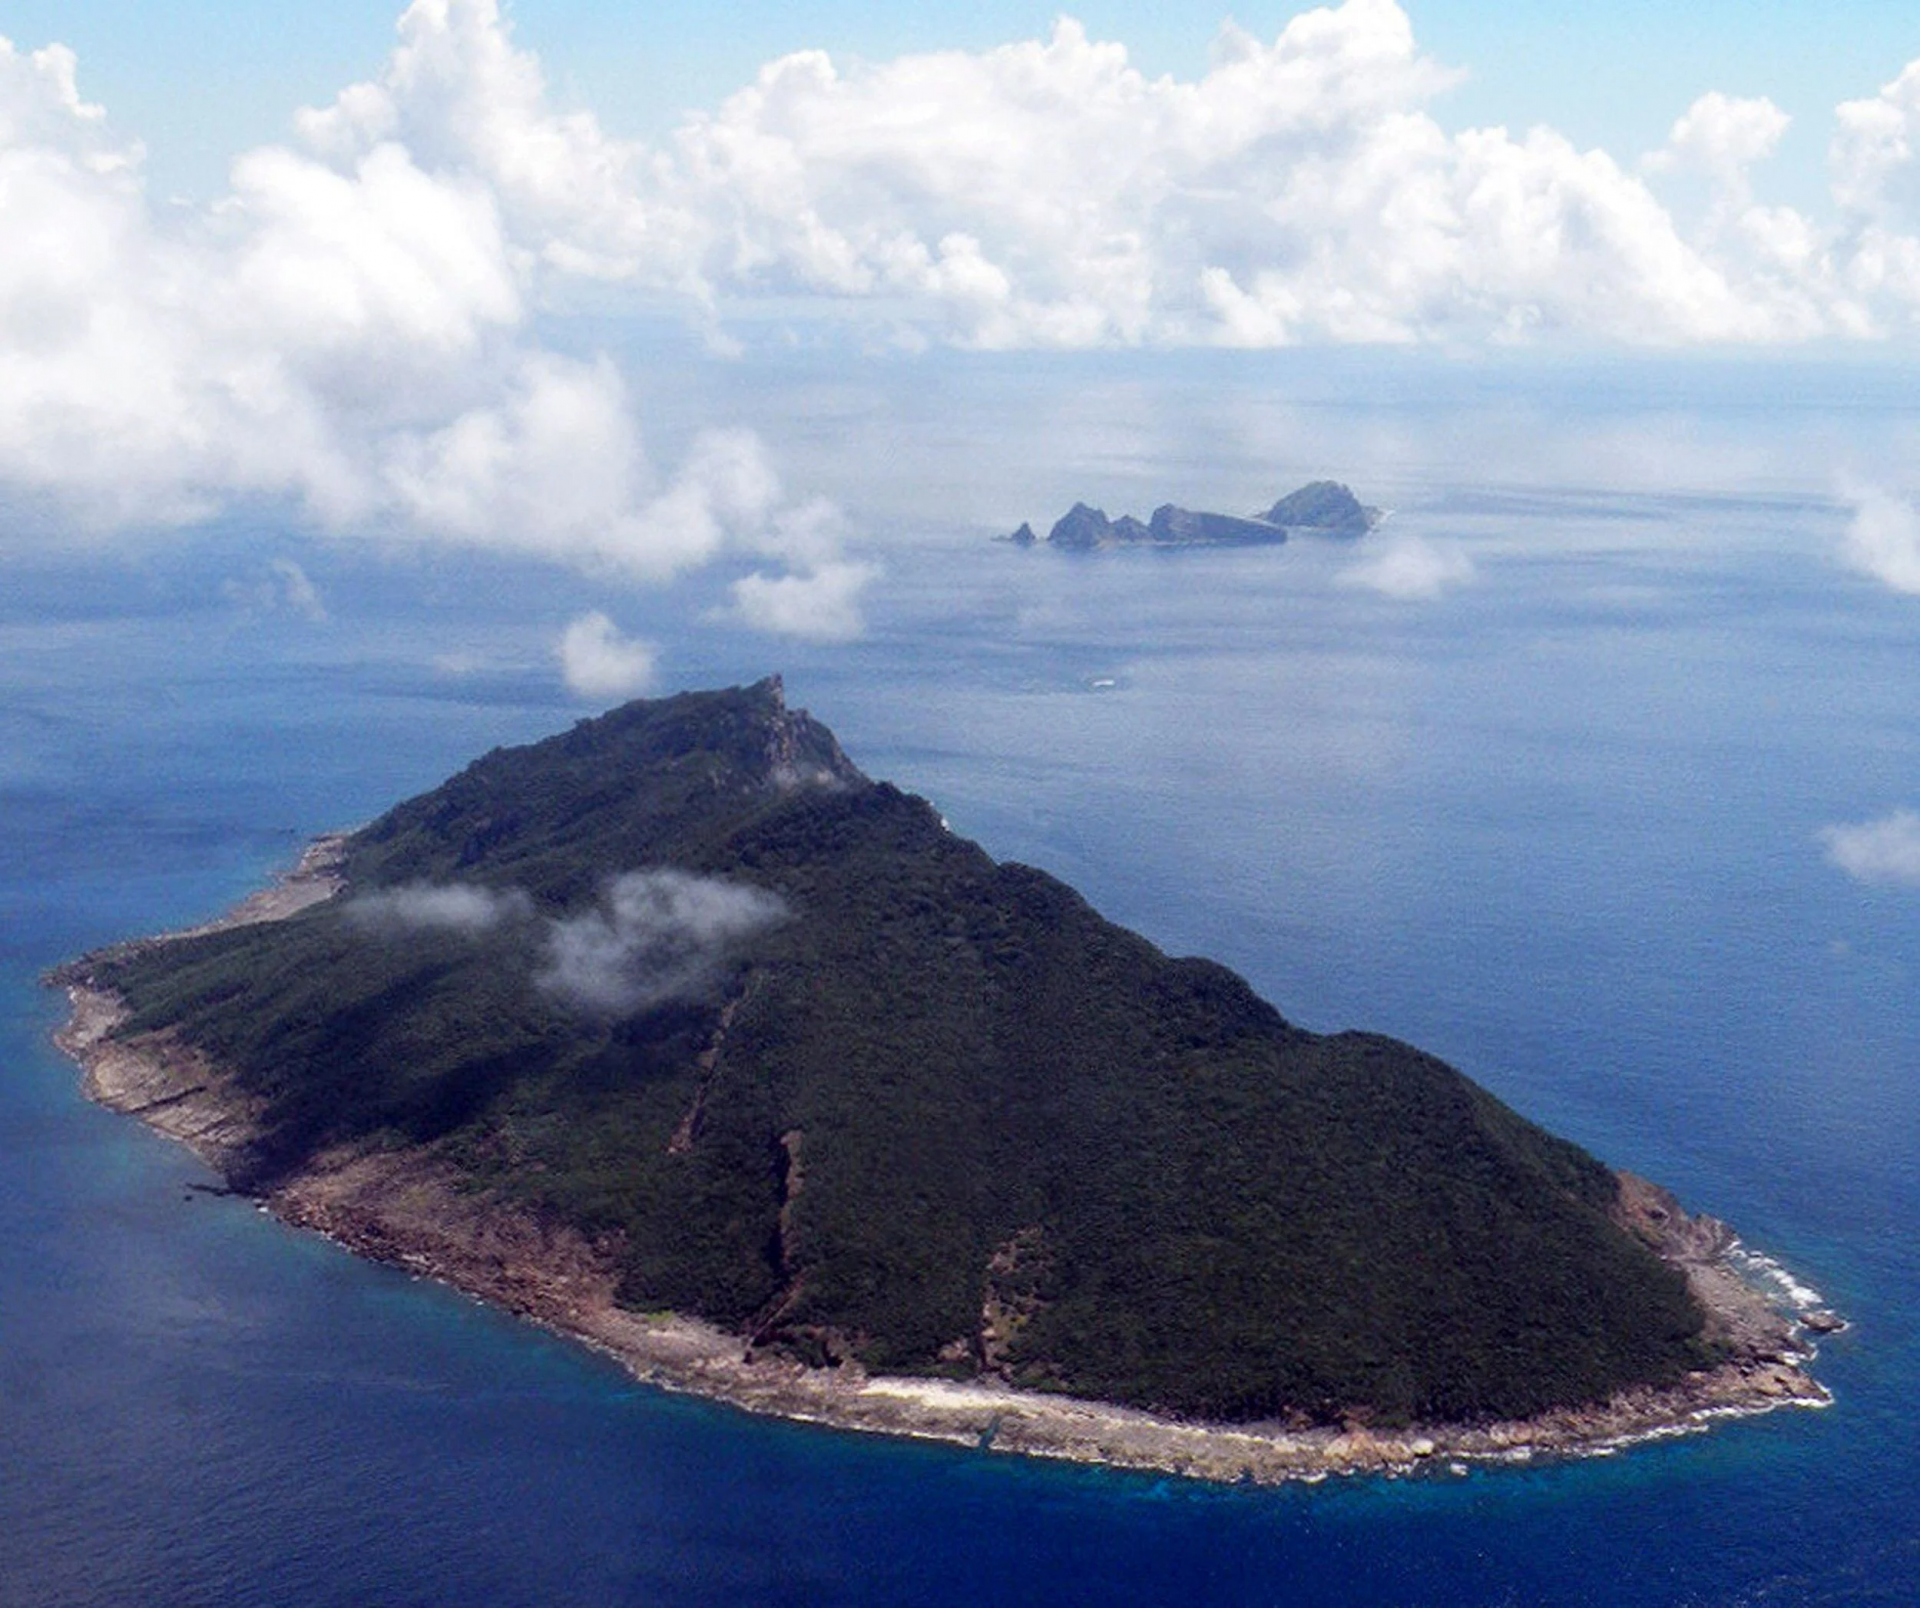 East China Sea: Japan asks China to take down digital museum on disputed island